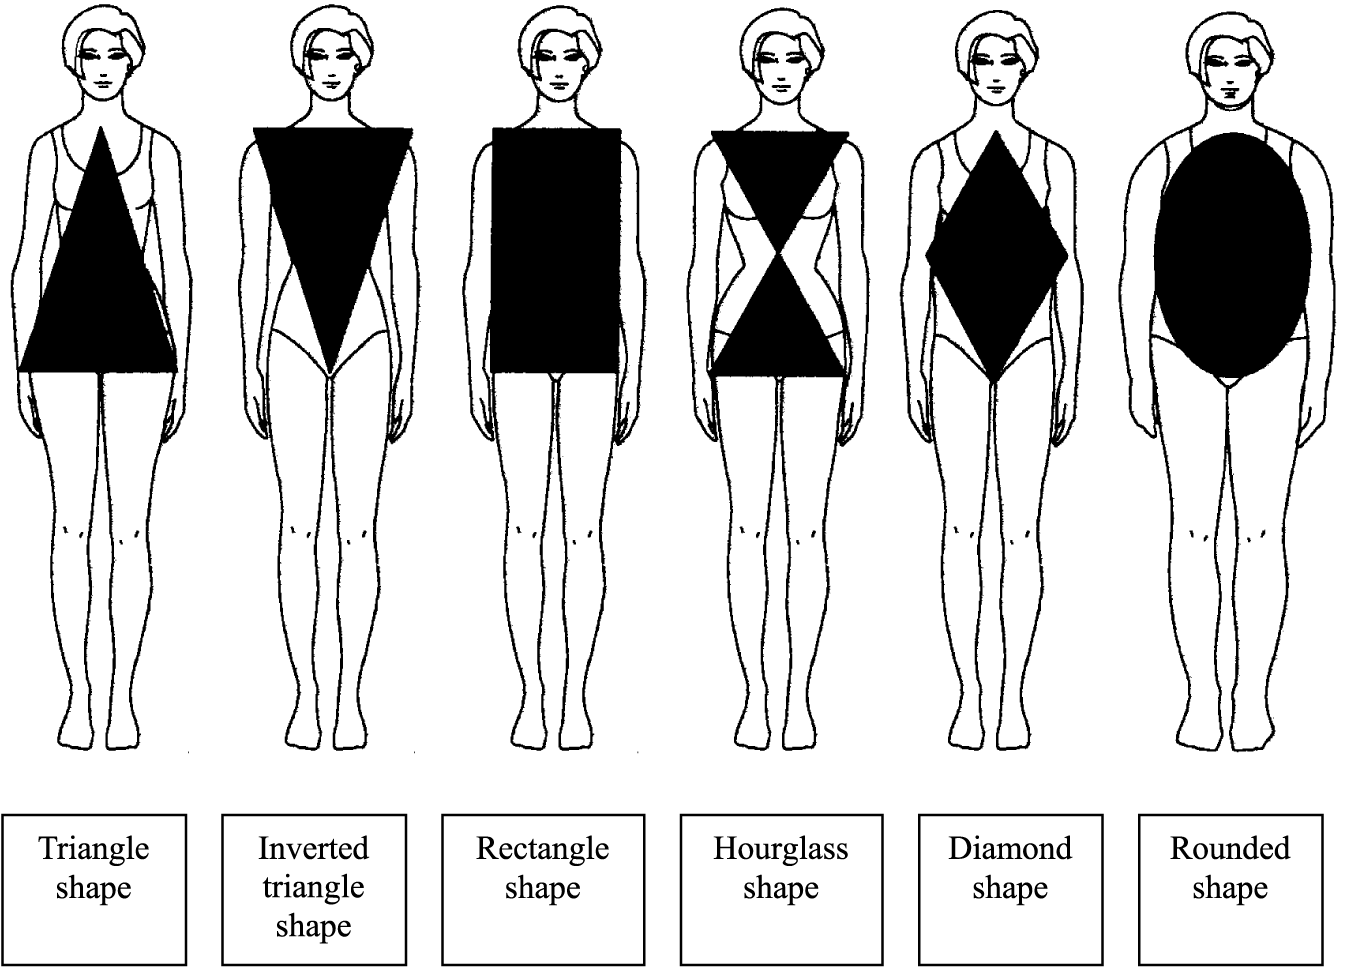 Learn Types Of Women Shapes For Dress That Make A